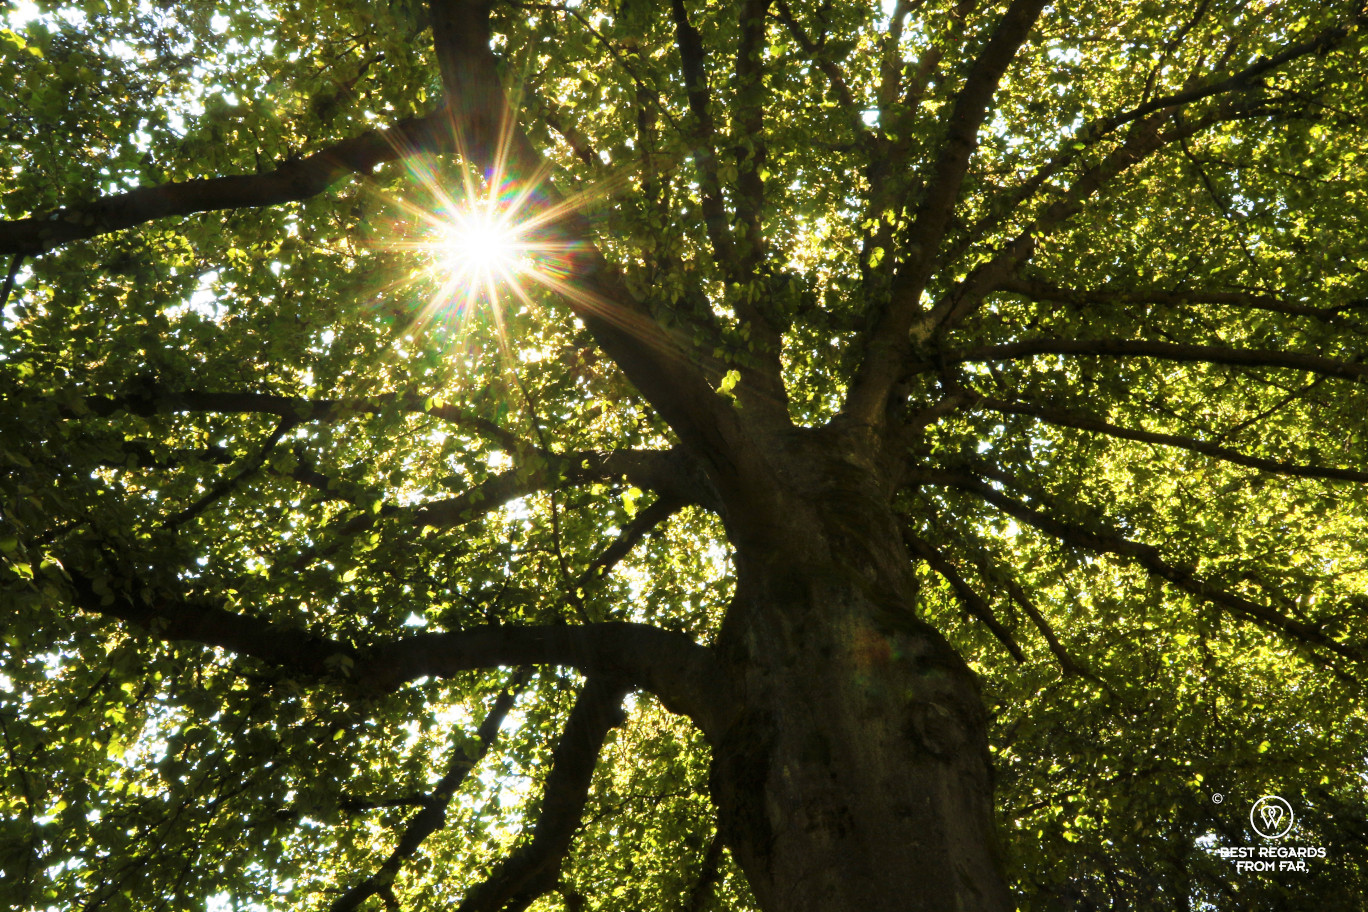 Sun rays piercing through the leaves of an old tree